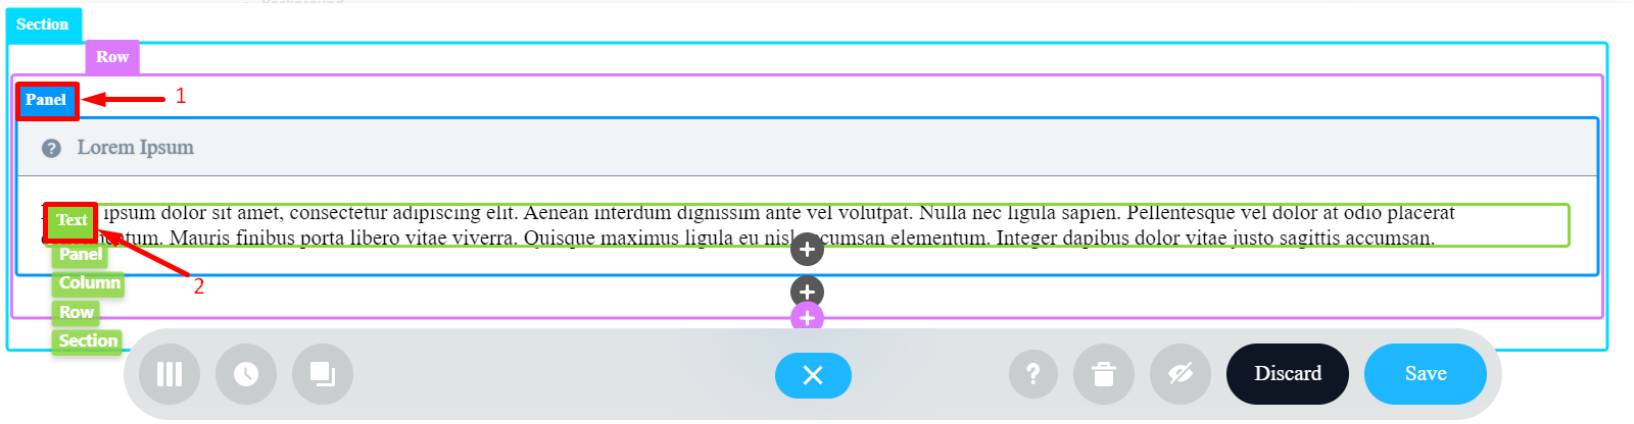 Panel title and Text content inside it: Visual Builder mode